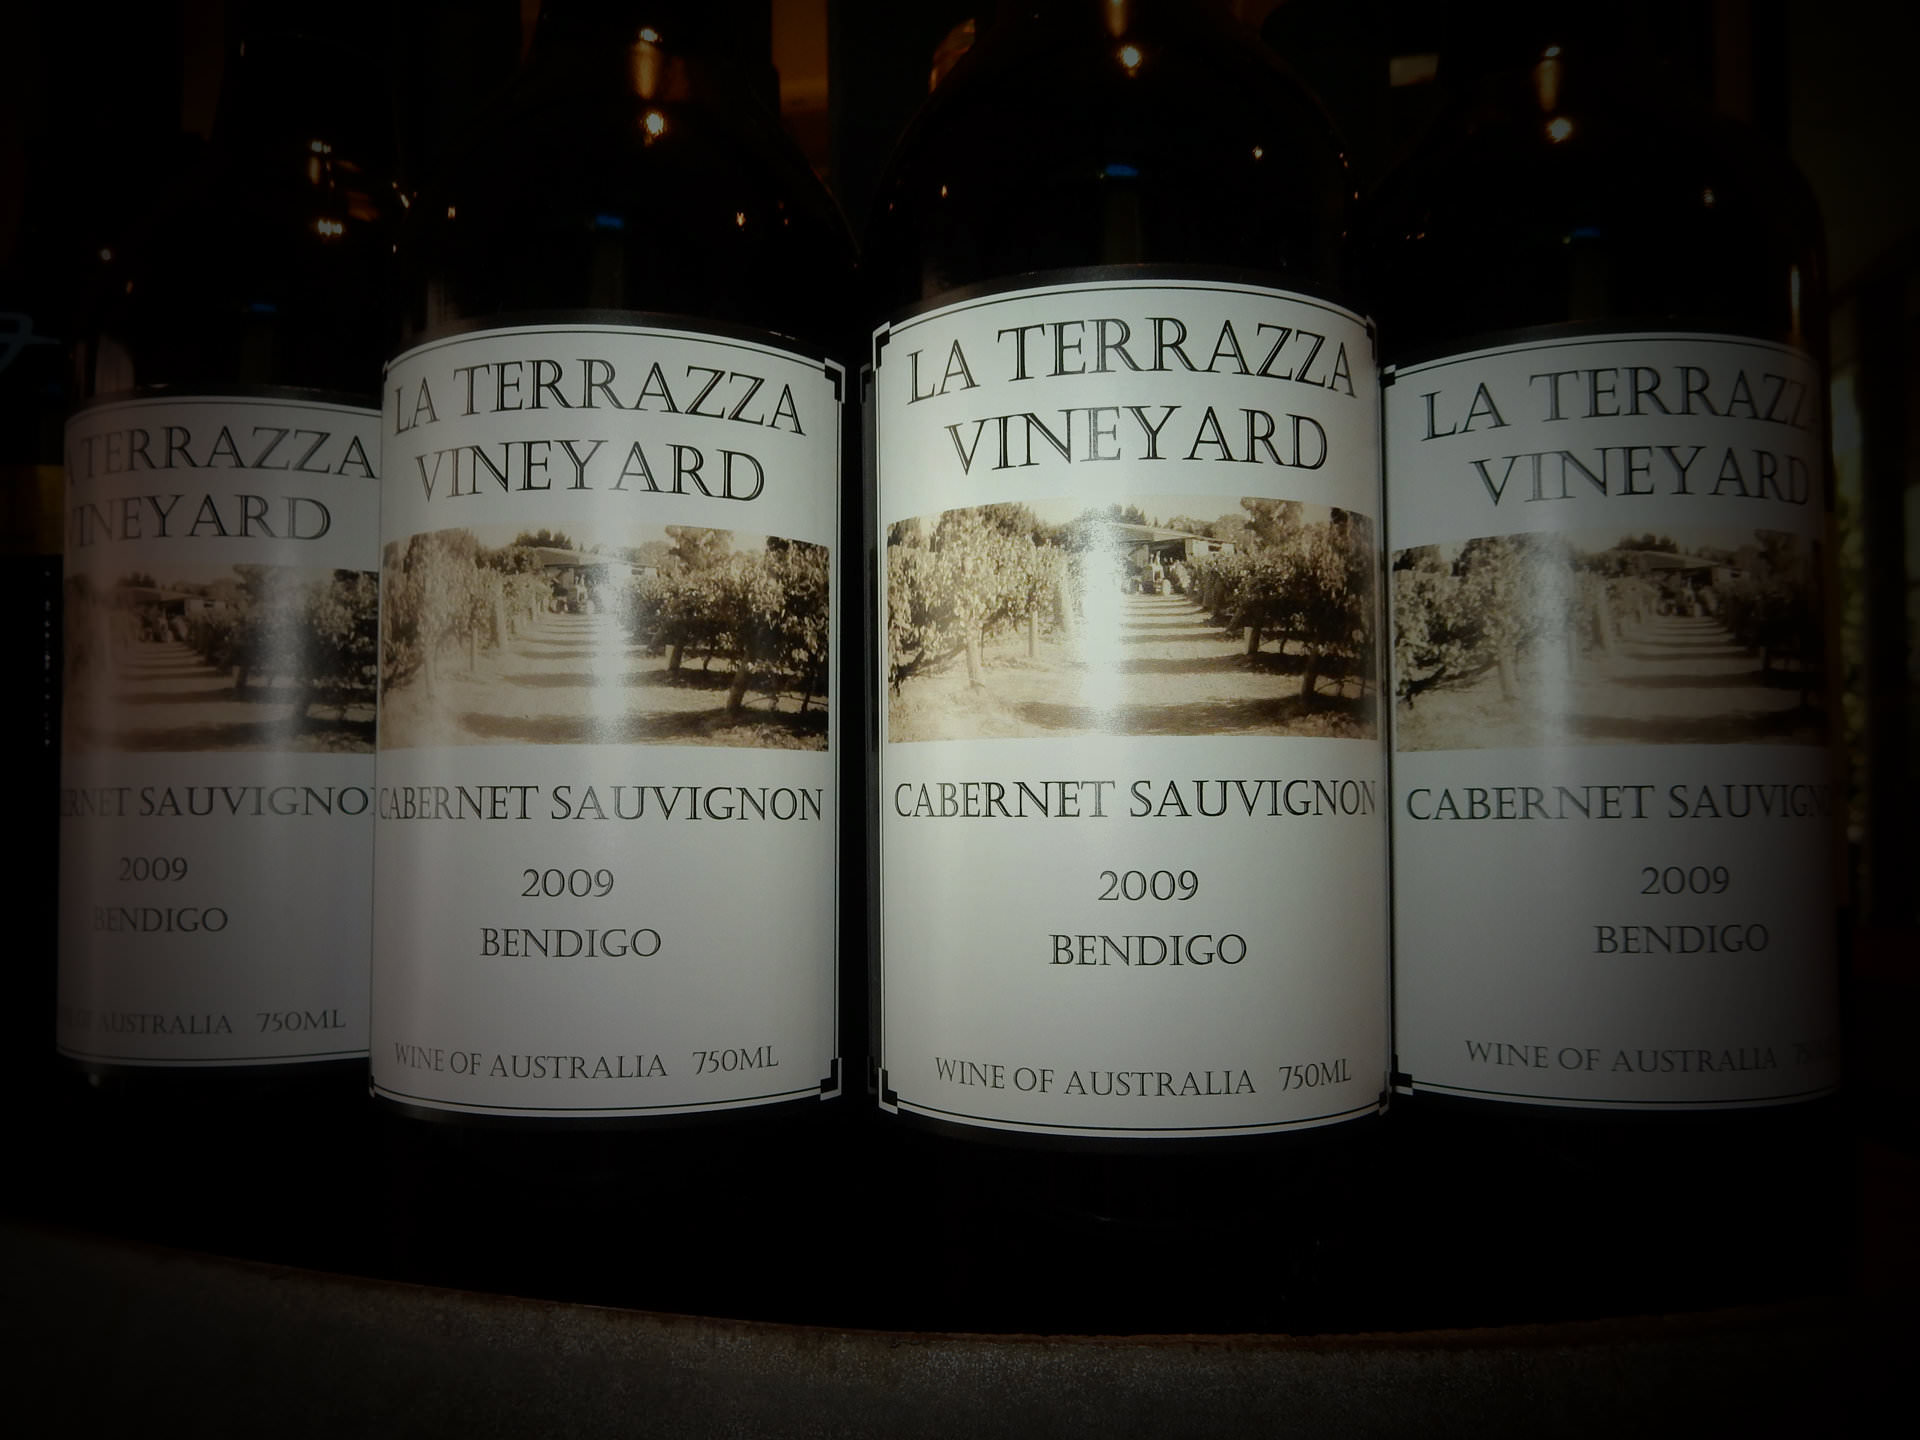 Amazing Wines - La Terrazza Slideshow